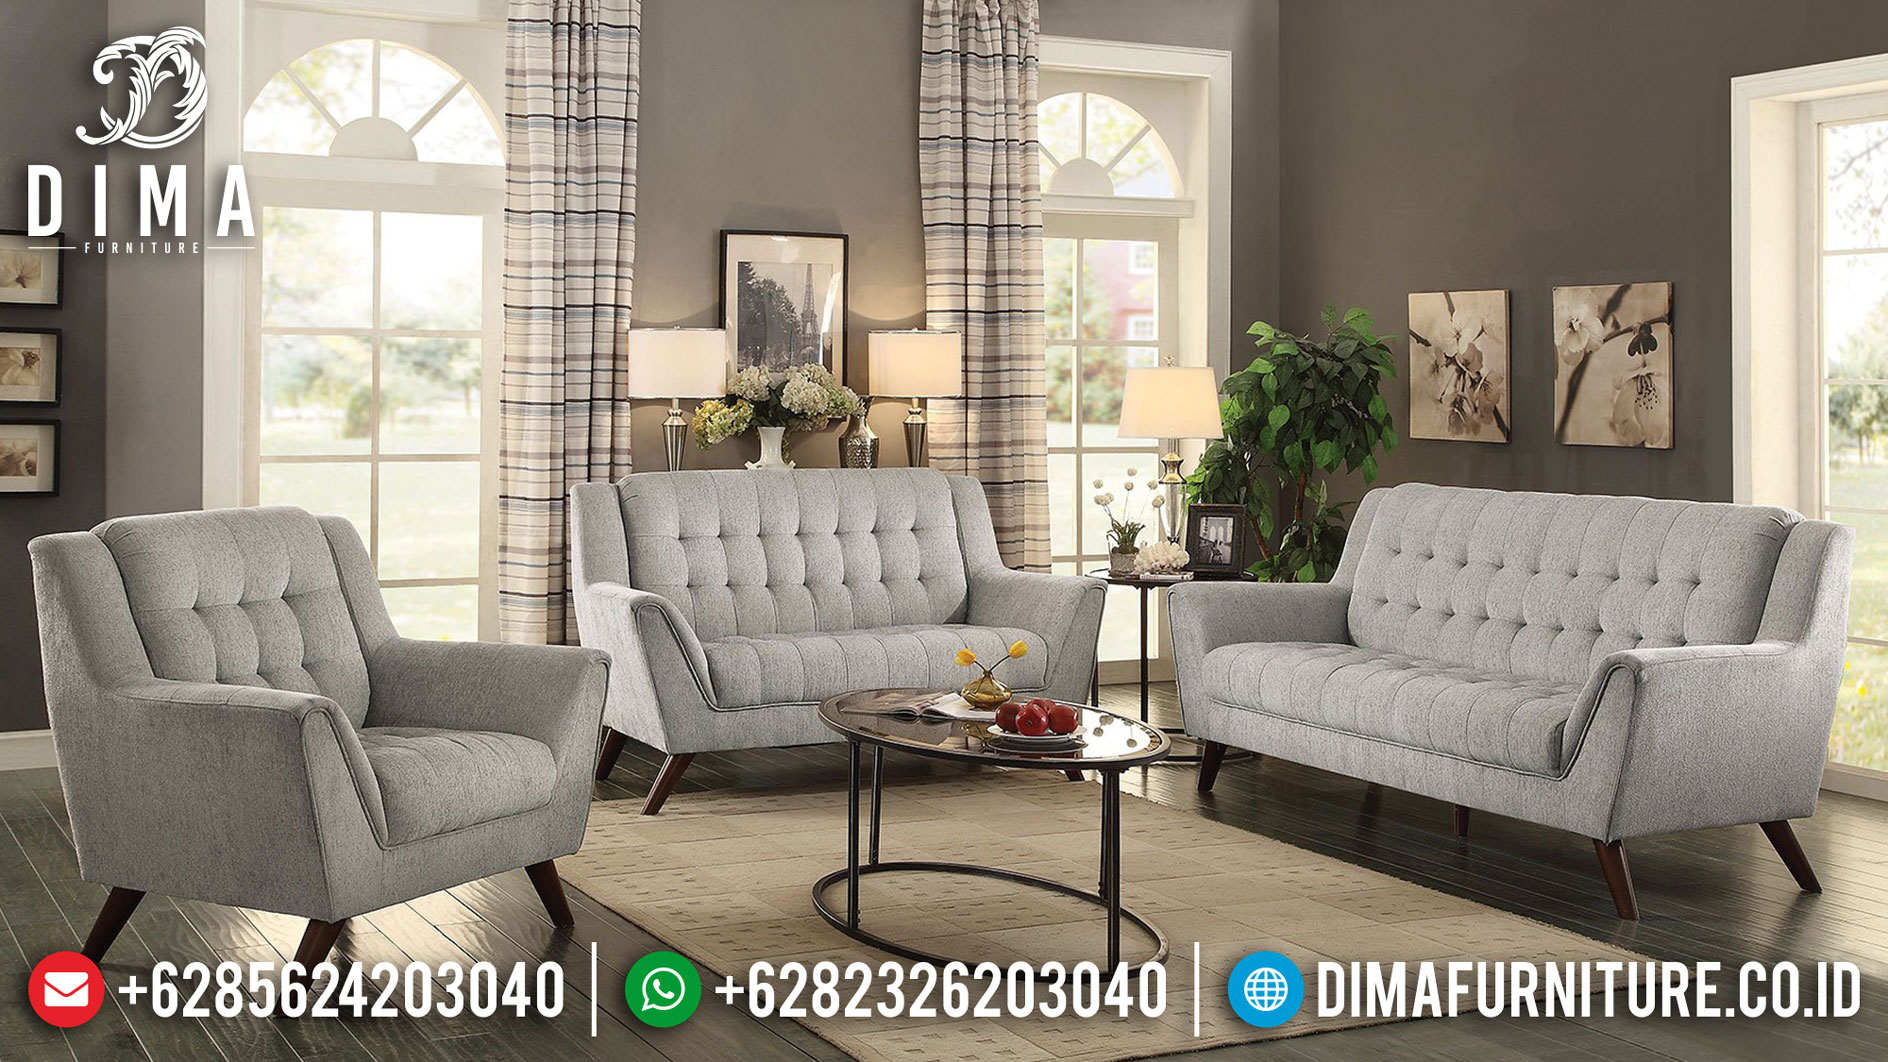 Desert Sand Color Set Sofa Tamu Minimalis Retro Grade A Quality BT-0863